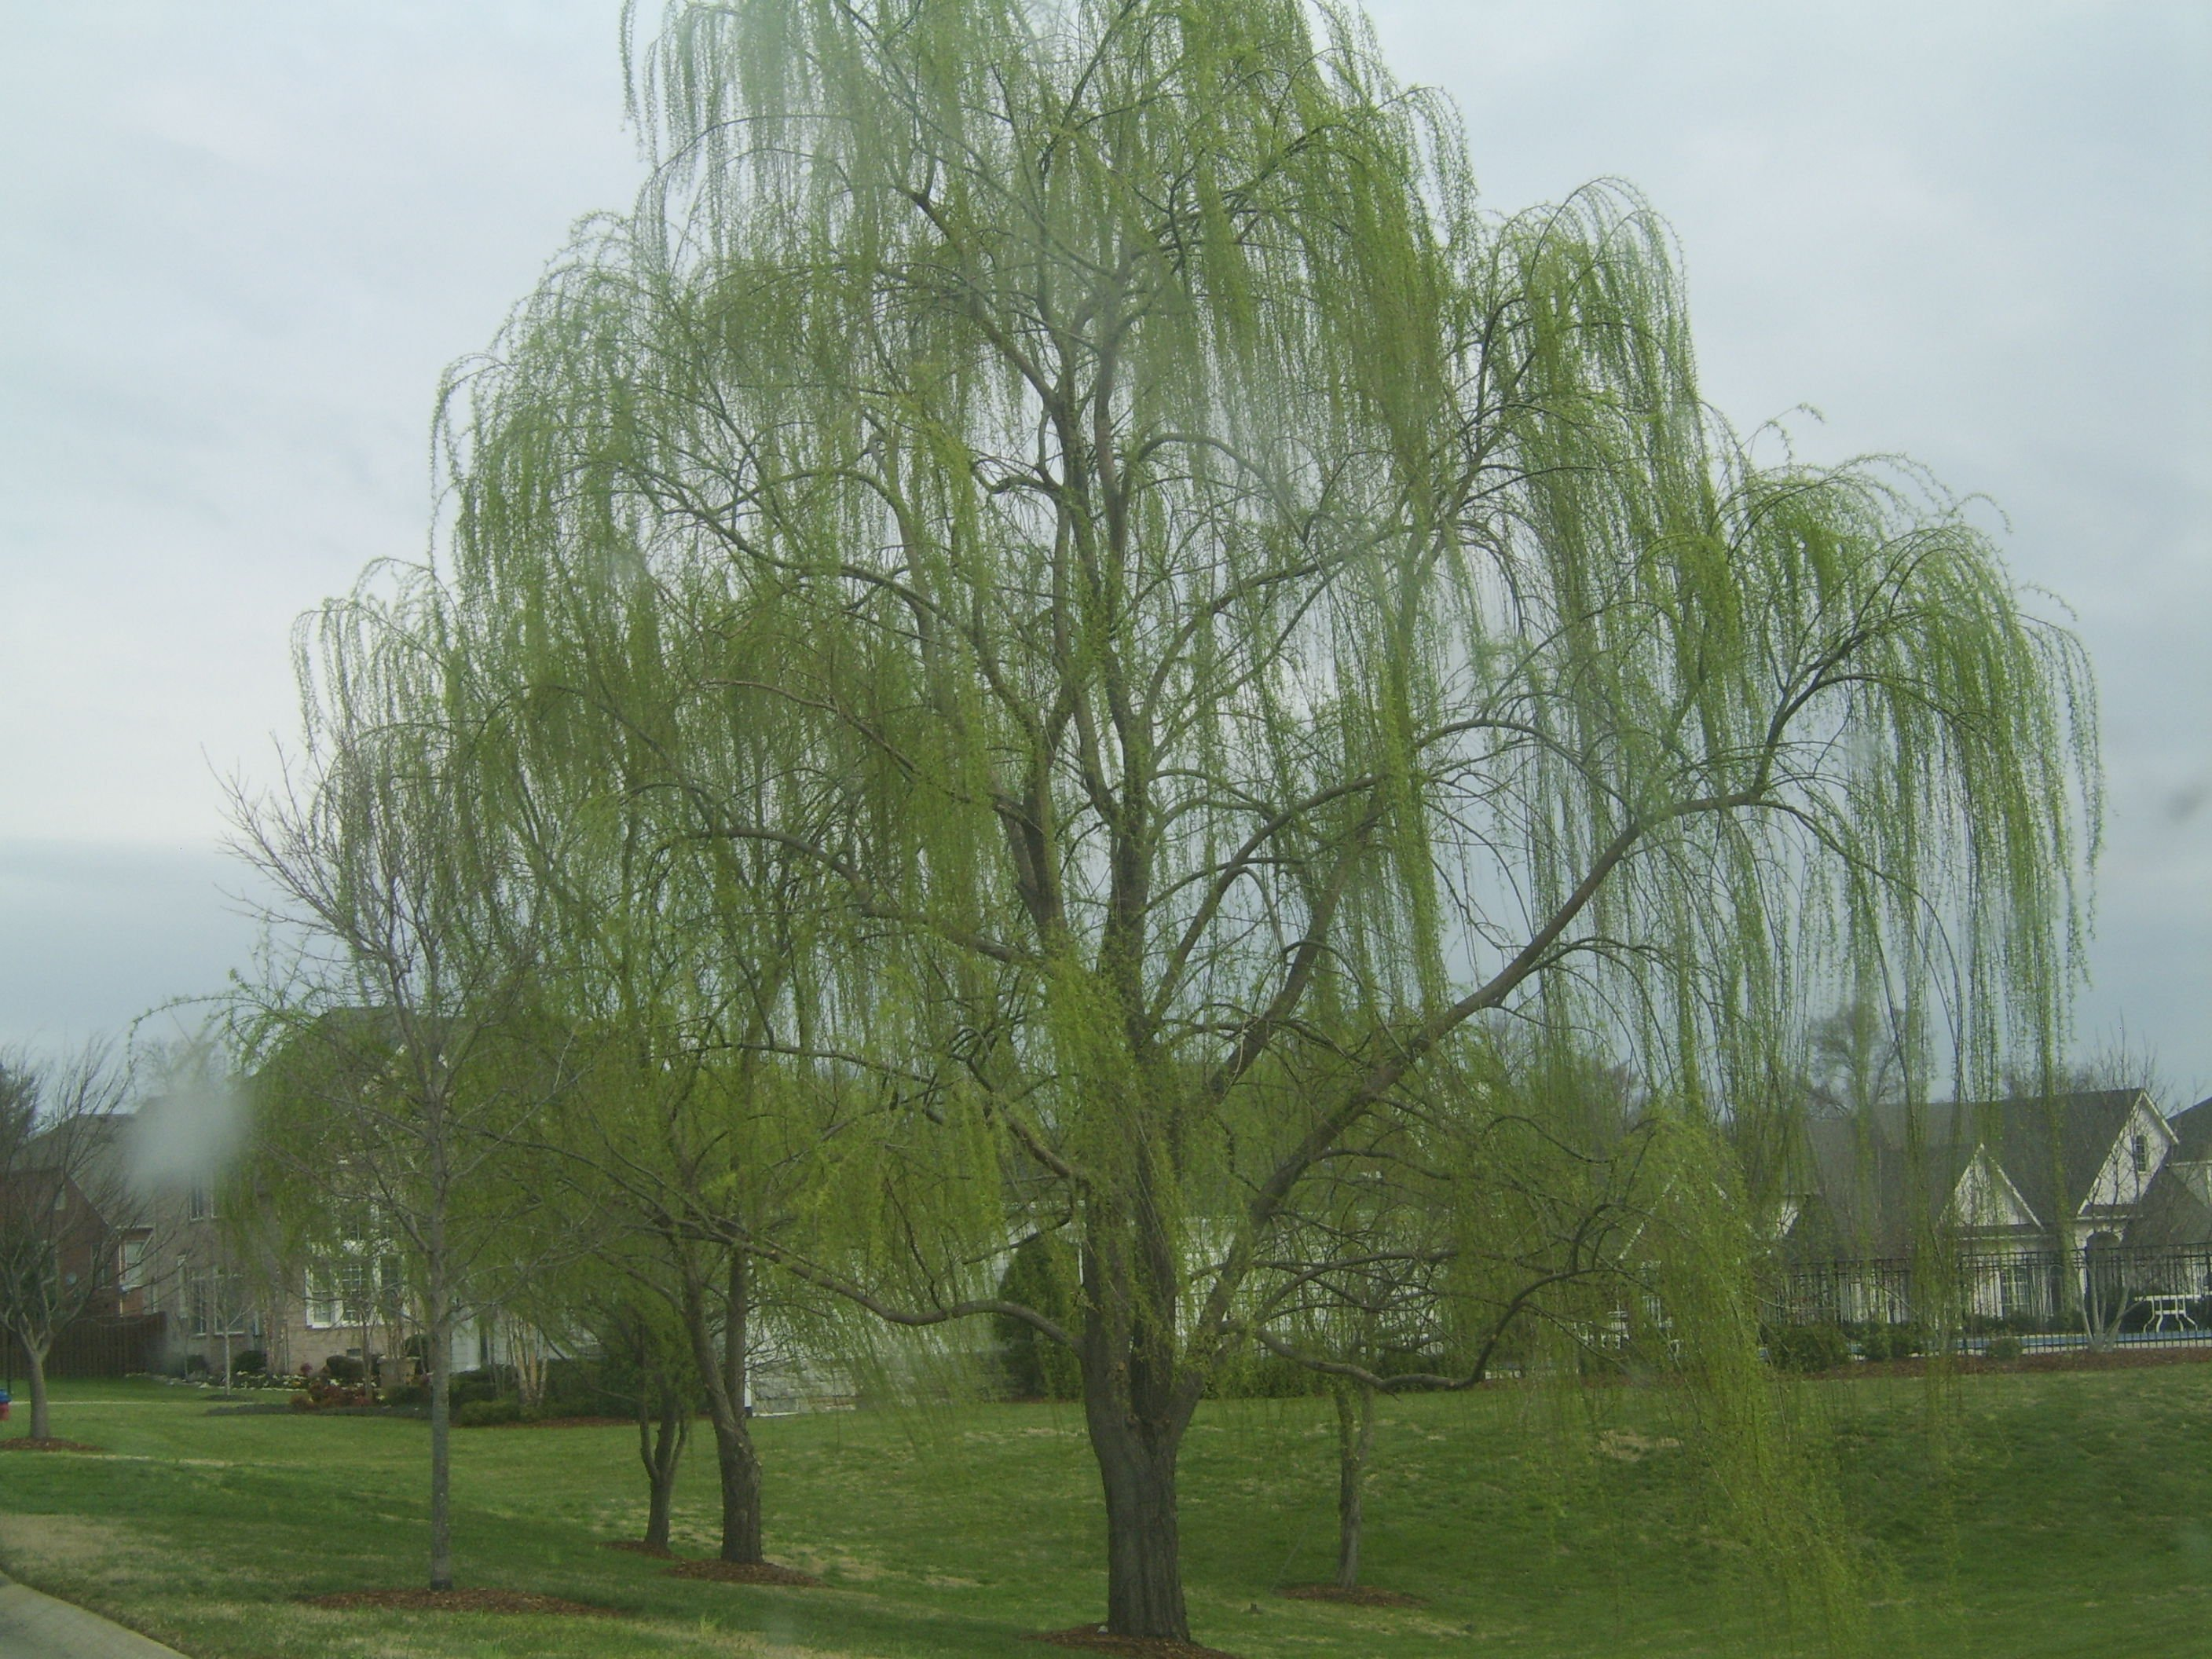 More Picture With the Weeping Willow Tree Types 2816x2112